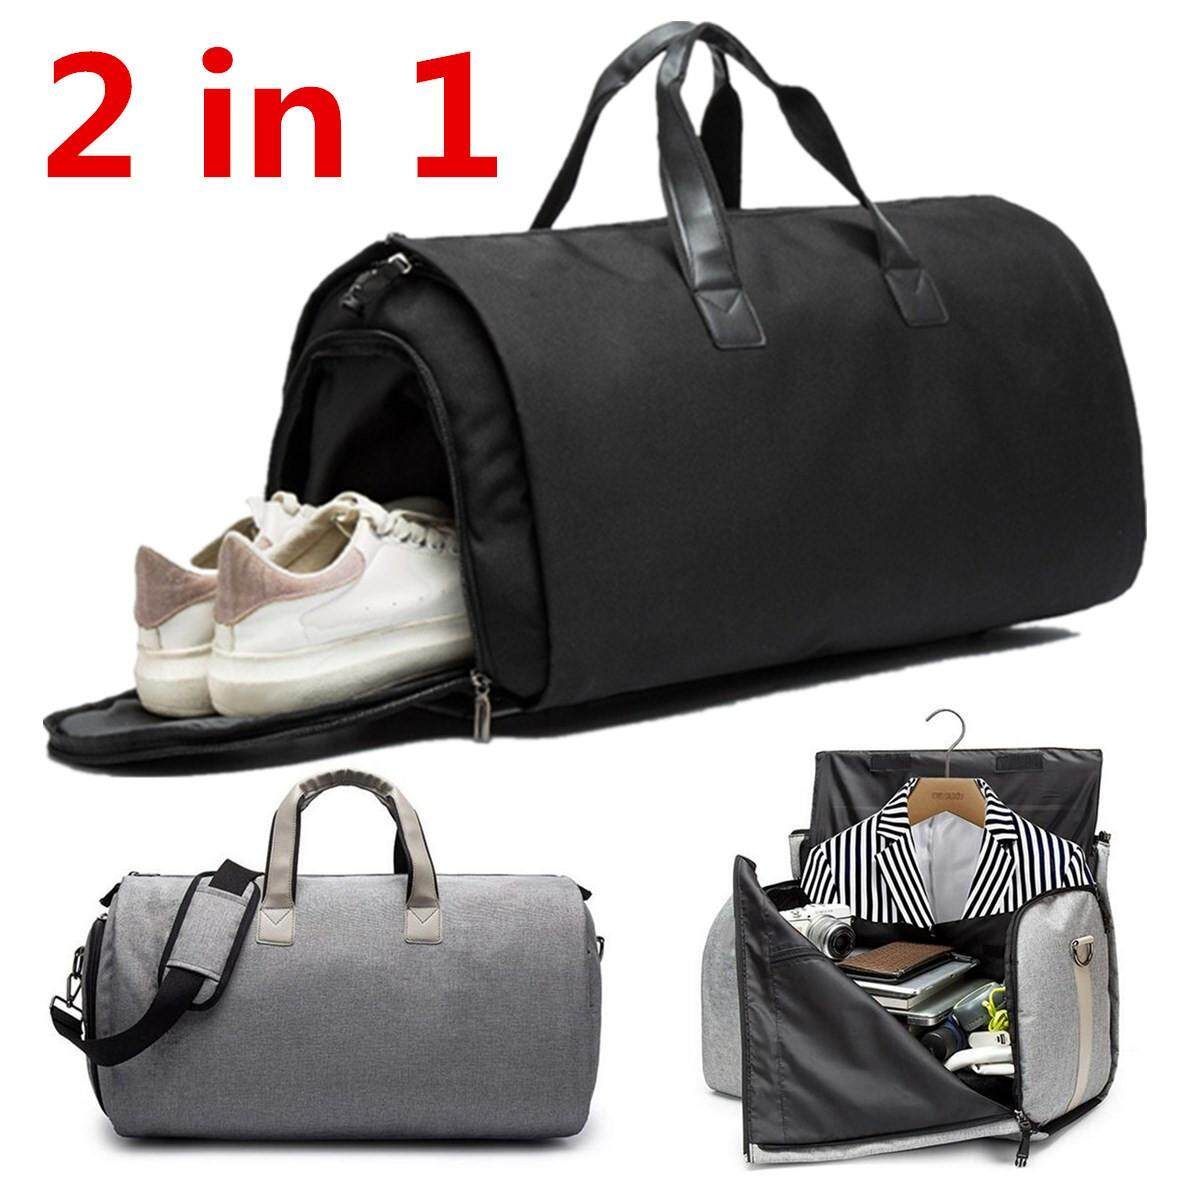 2 in 1 Travel Garment Bag+Duffle Business Suit&Jacket Gym Sport Luggage Bags 2018 HOT Mens 2 In 1 Travel Garment Bag+Duffle Business Portable Suit&Jacket Bag